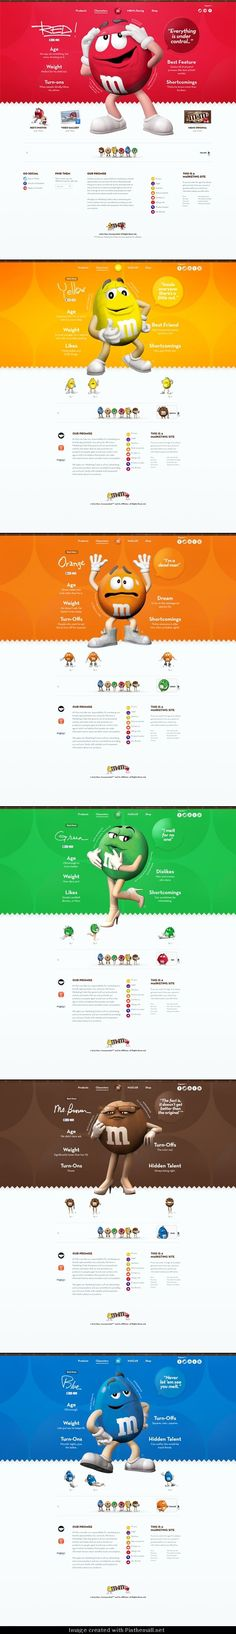 Cool Web Design on the Internet, M&M. #webdesign #webdevelopment #website @ http://www.pinterest.com/alfredchong/web-design/. If you like UX, design, or design thinking, check out theuxblog.com